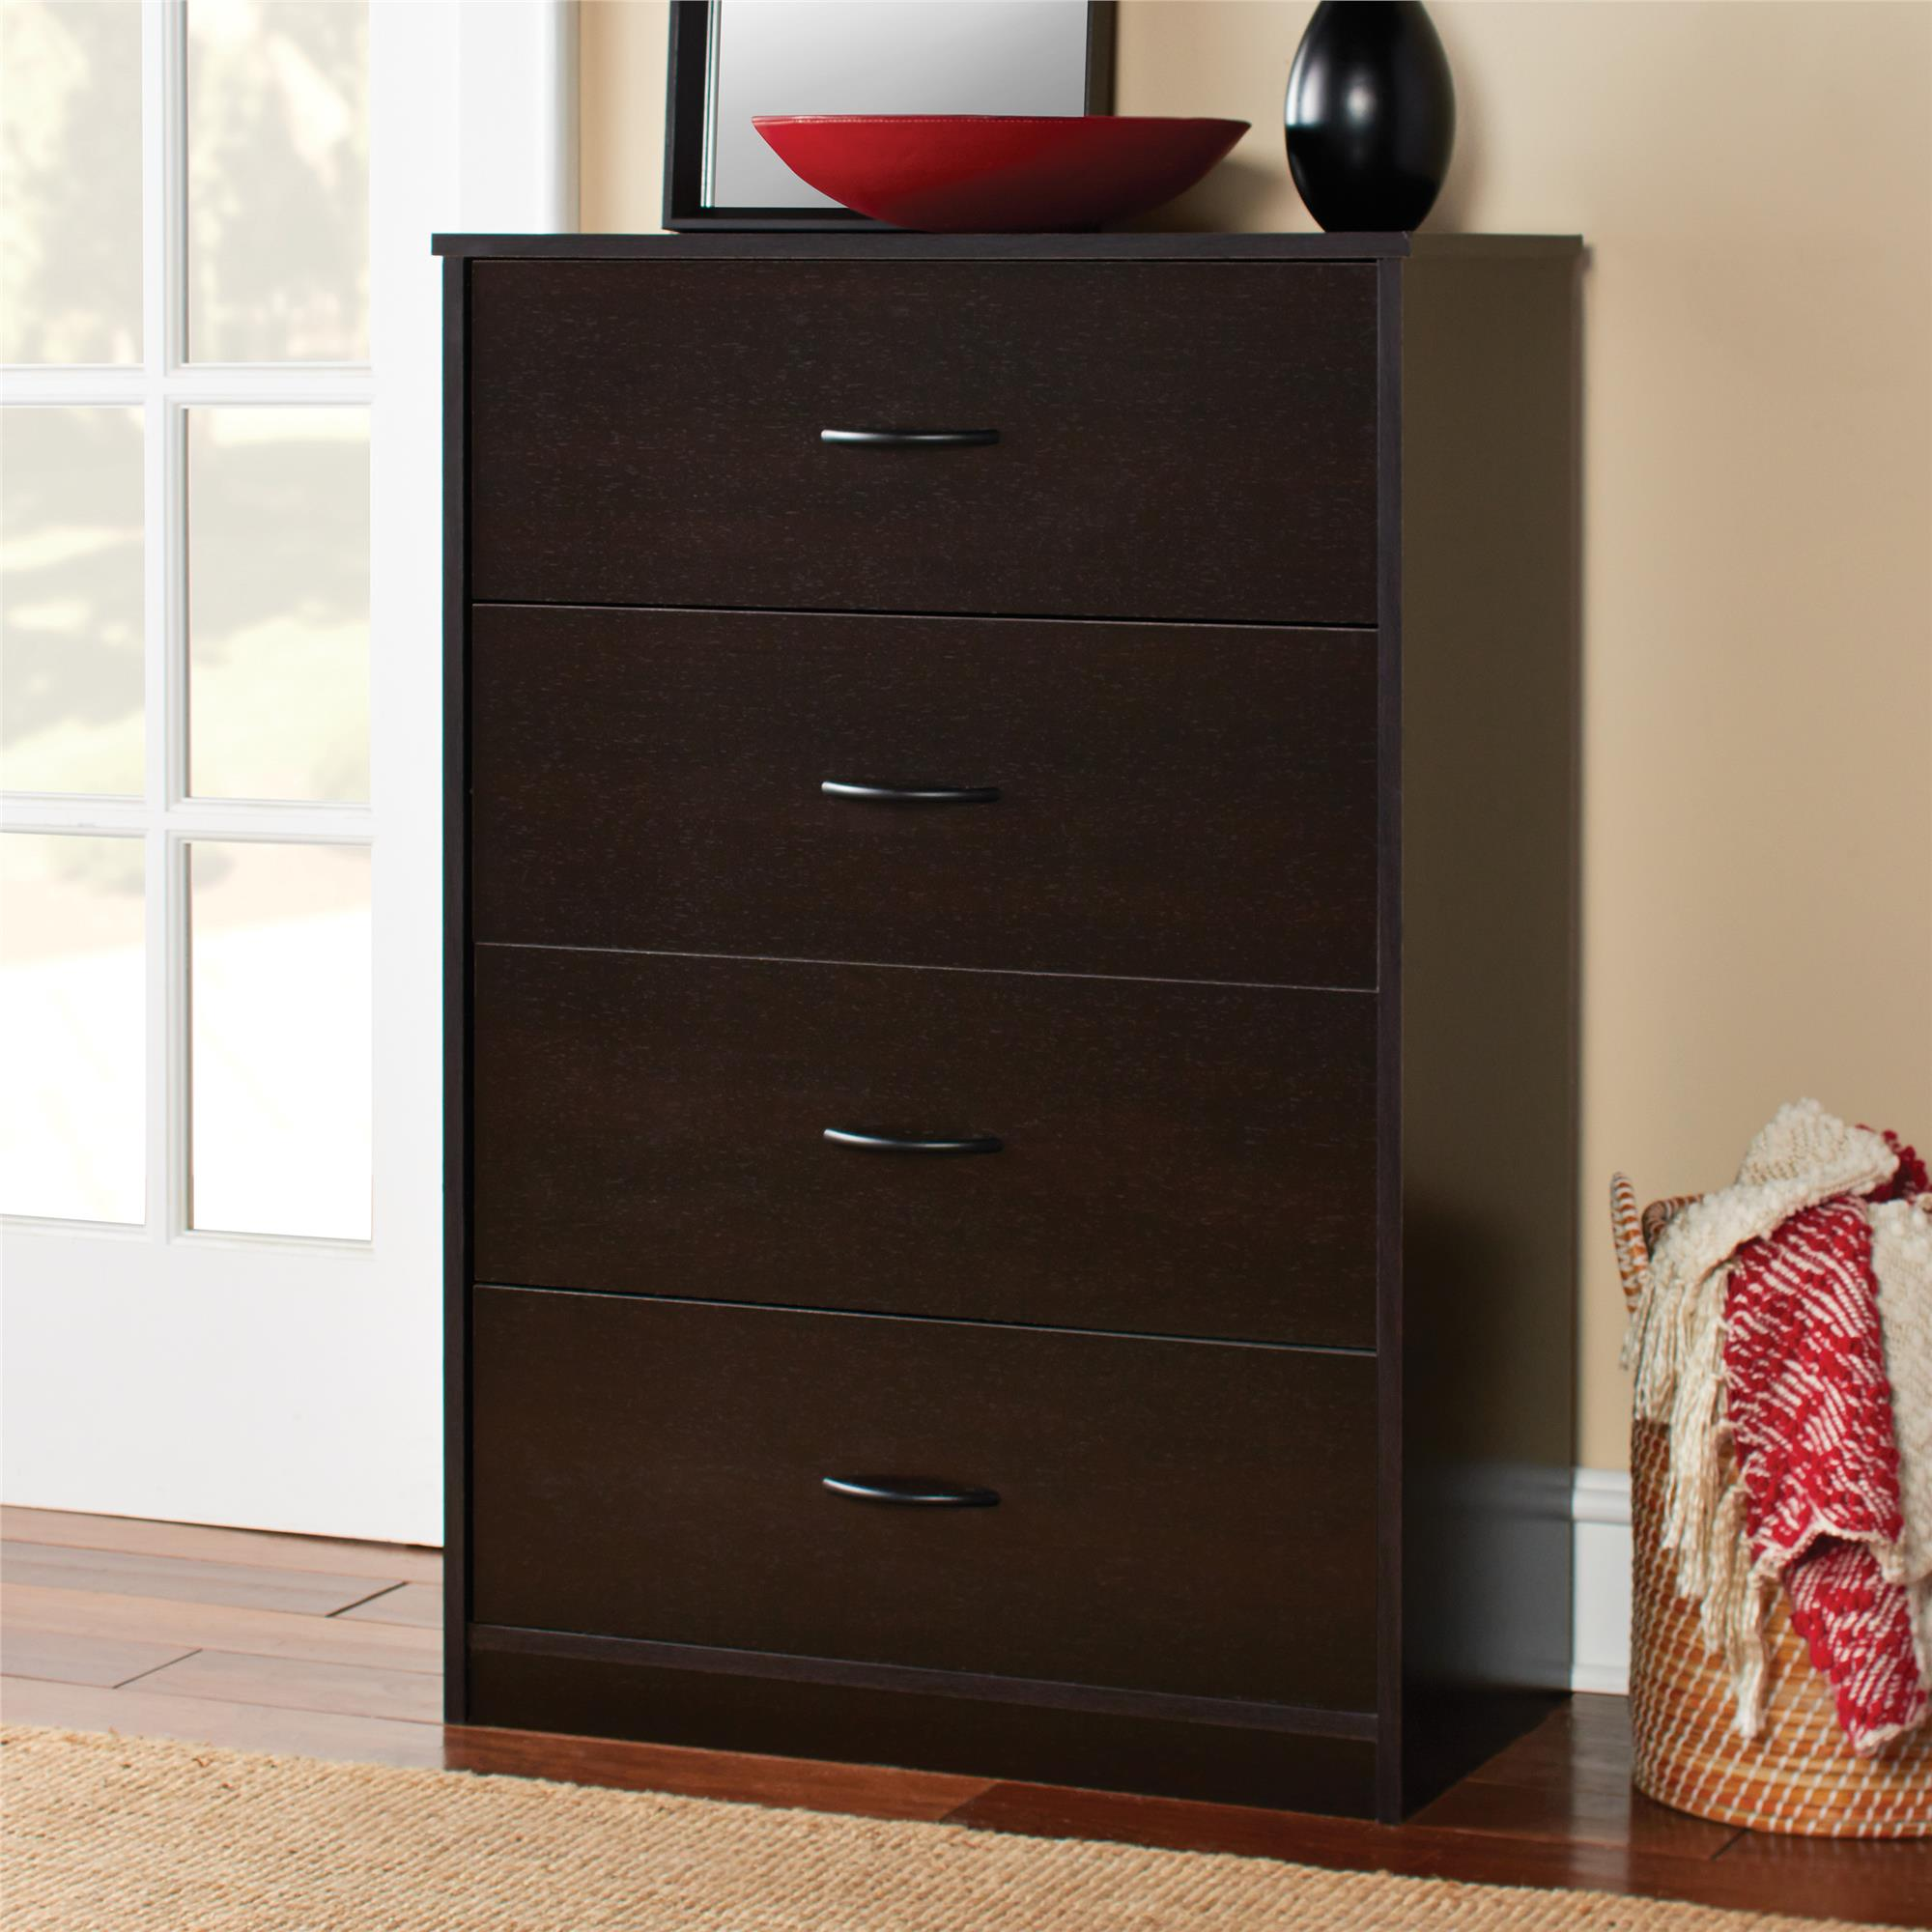 Mainstays 4-Drawer Dresser, Espresso